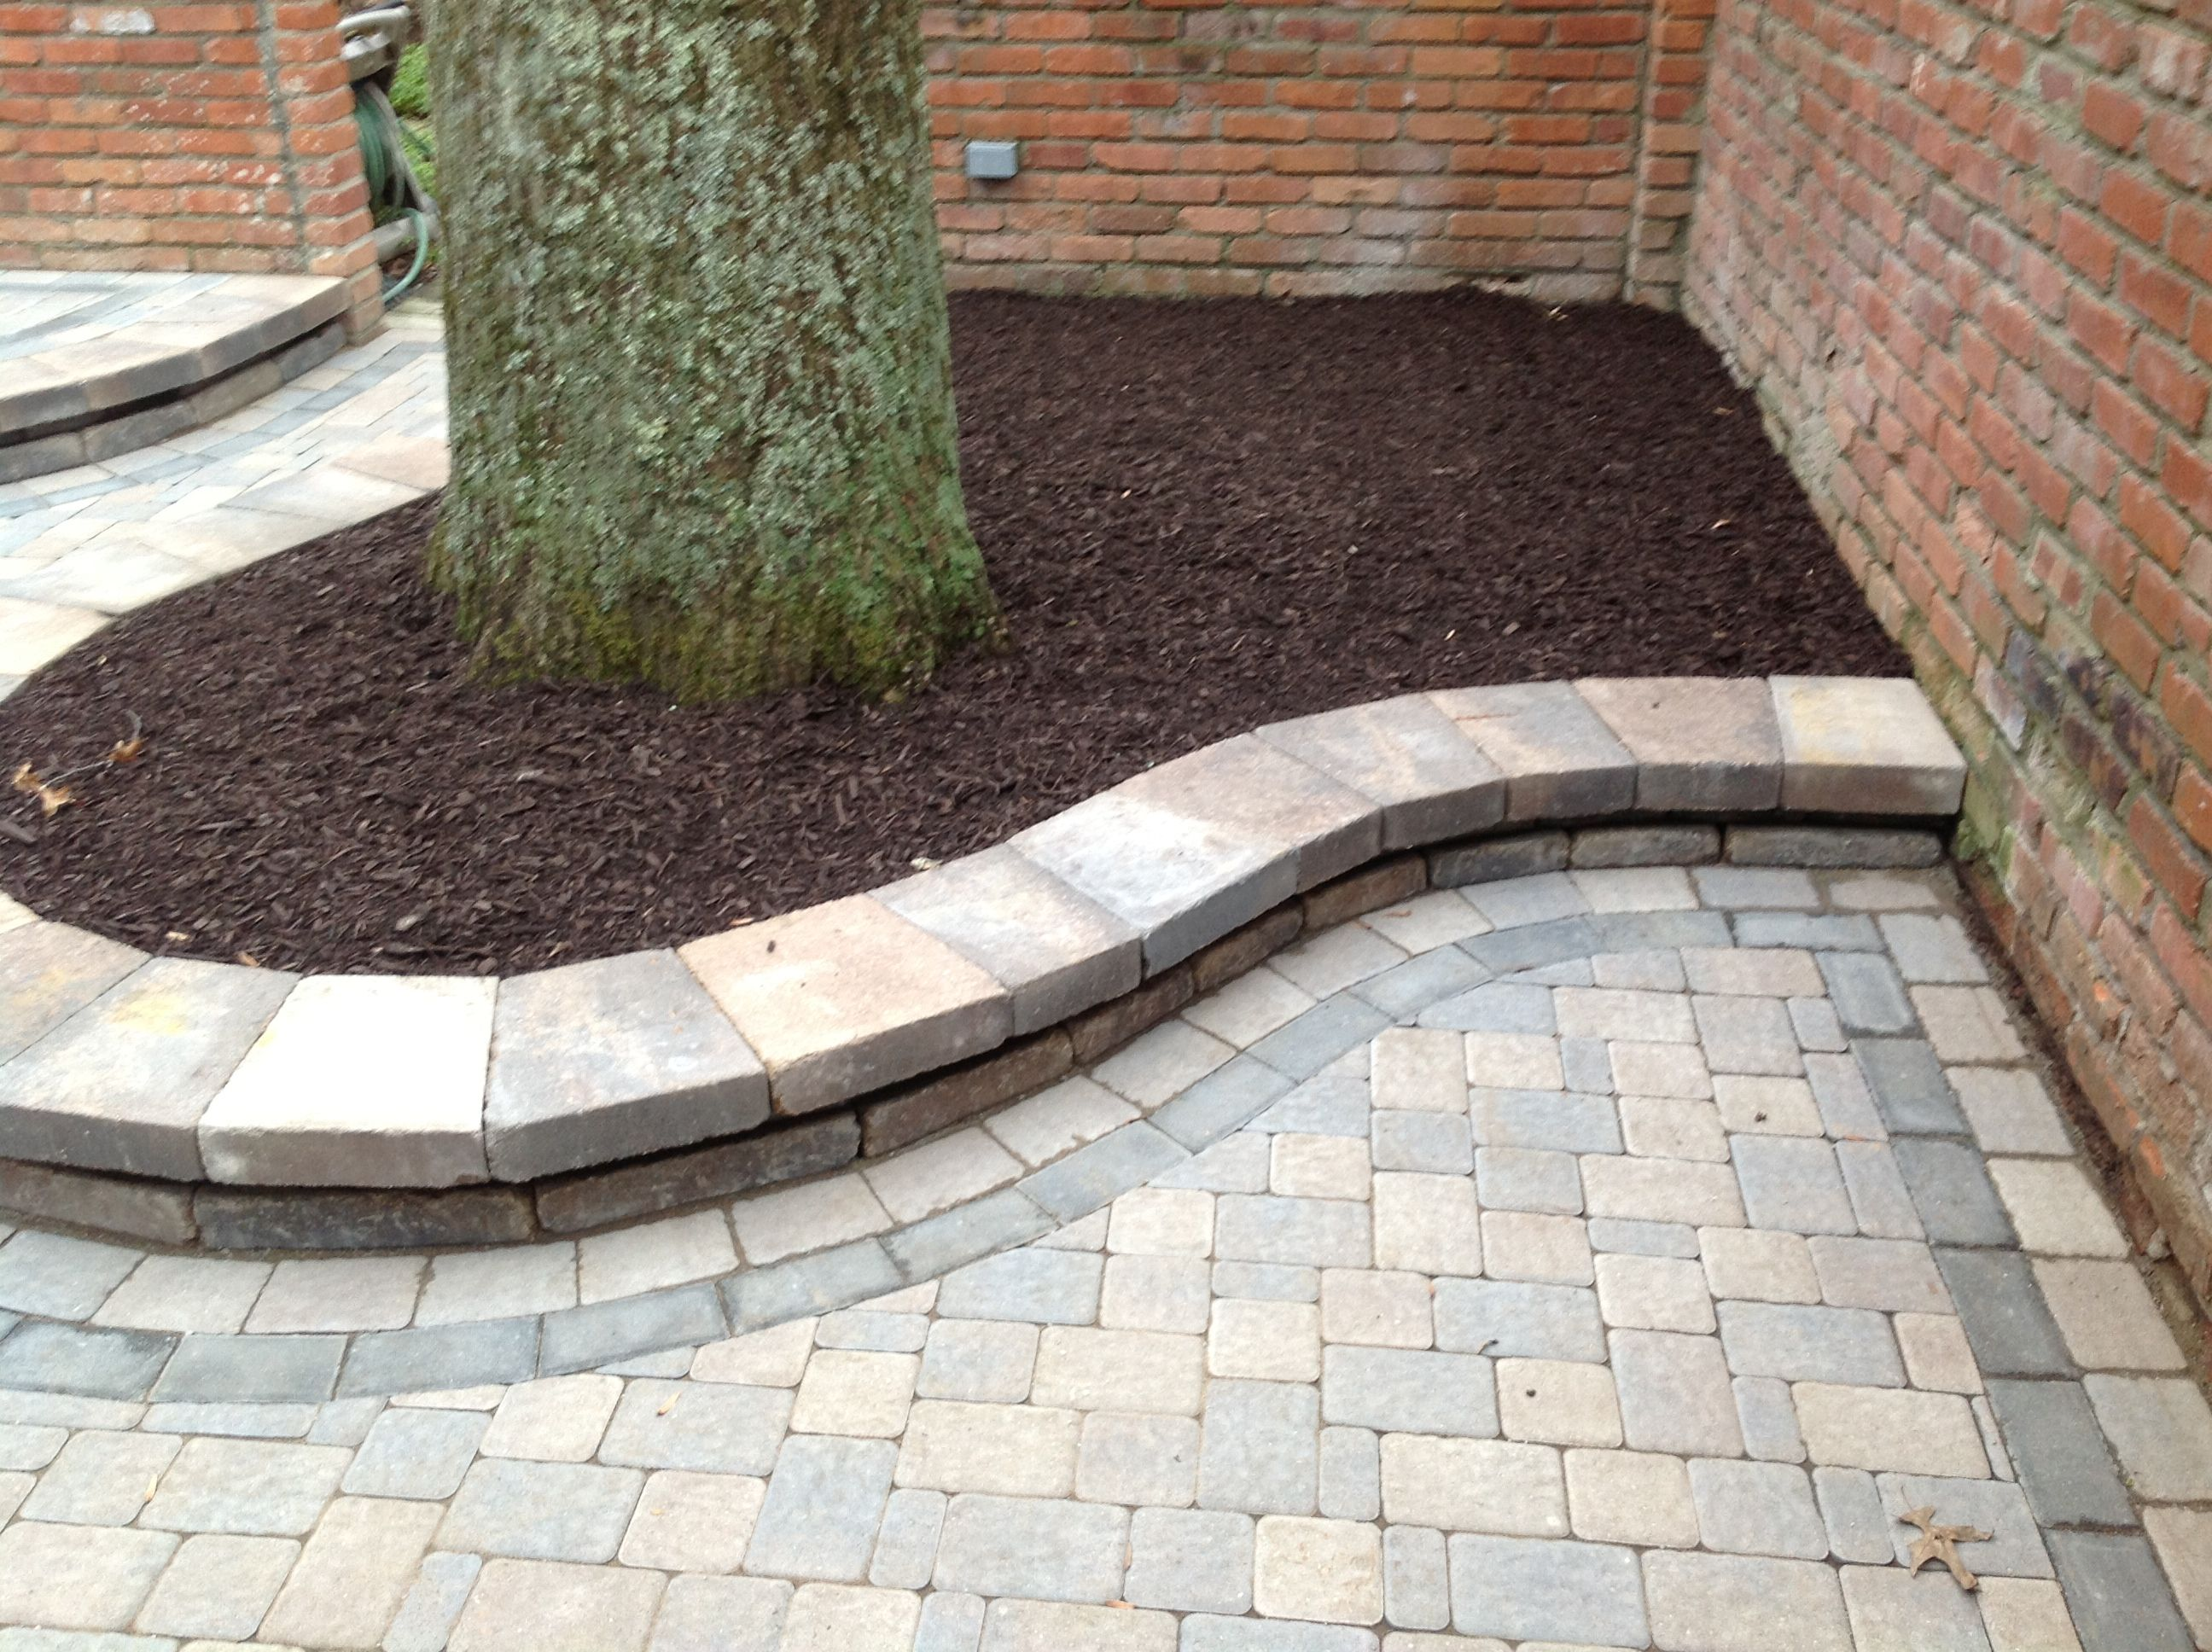 Decorative Natty Unilock Pavers For Landscape Or Walkway Ideas: Tested And  True Unilock Pavers With Edging For Landscape Ideas